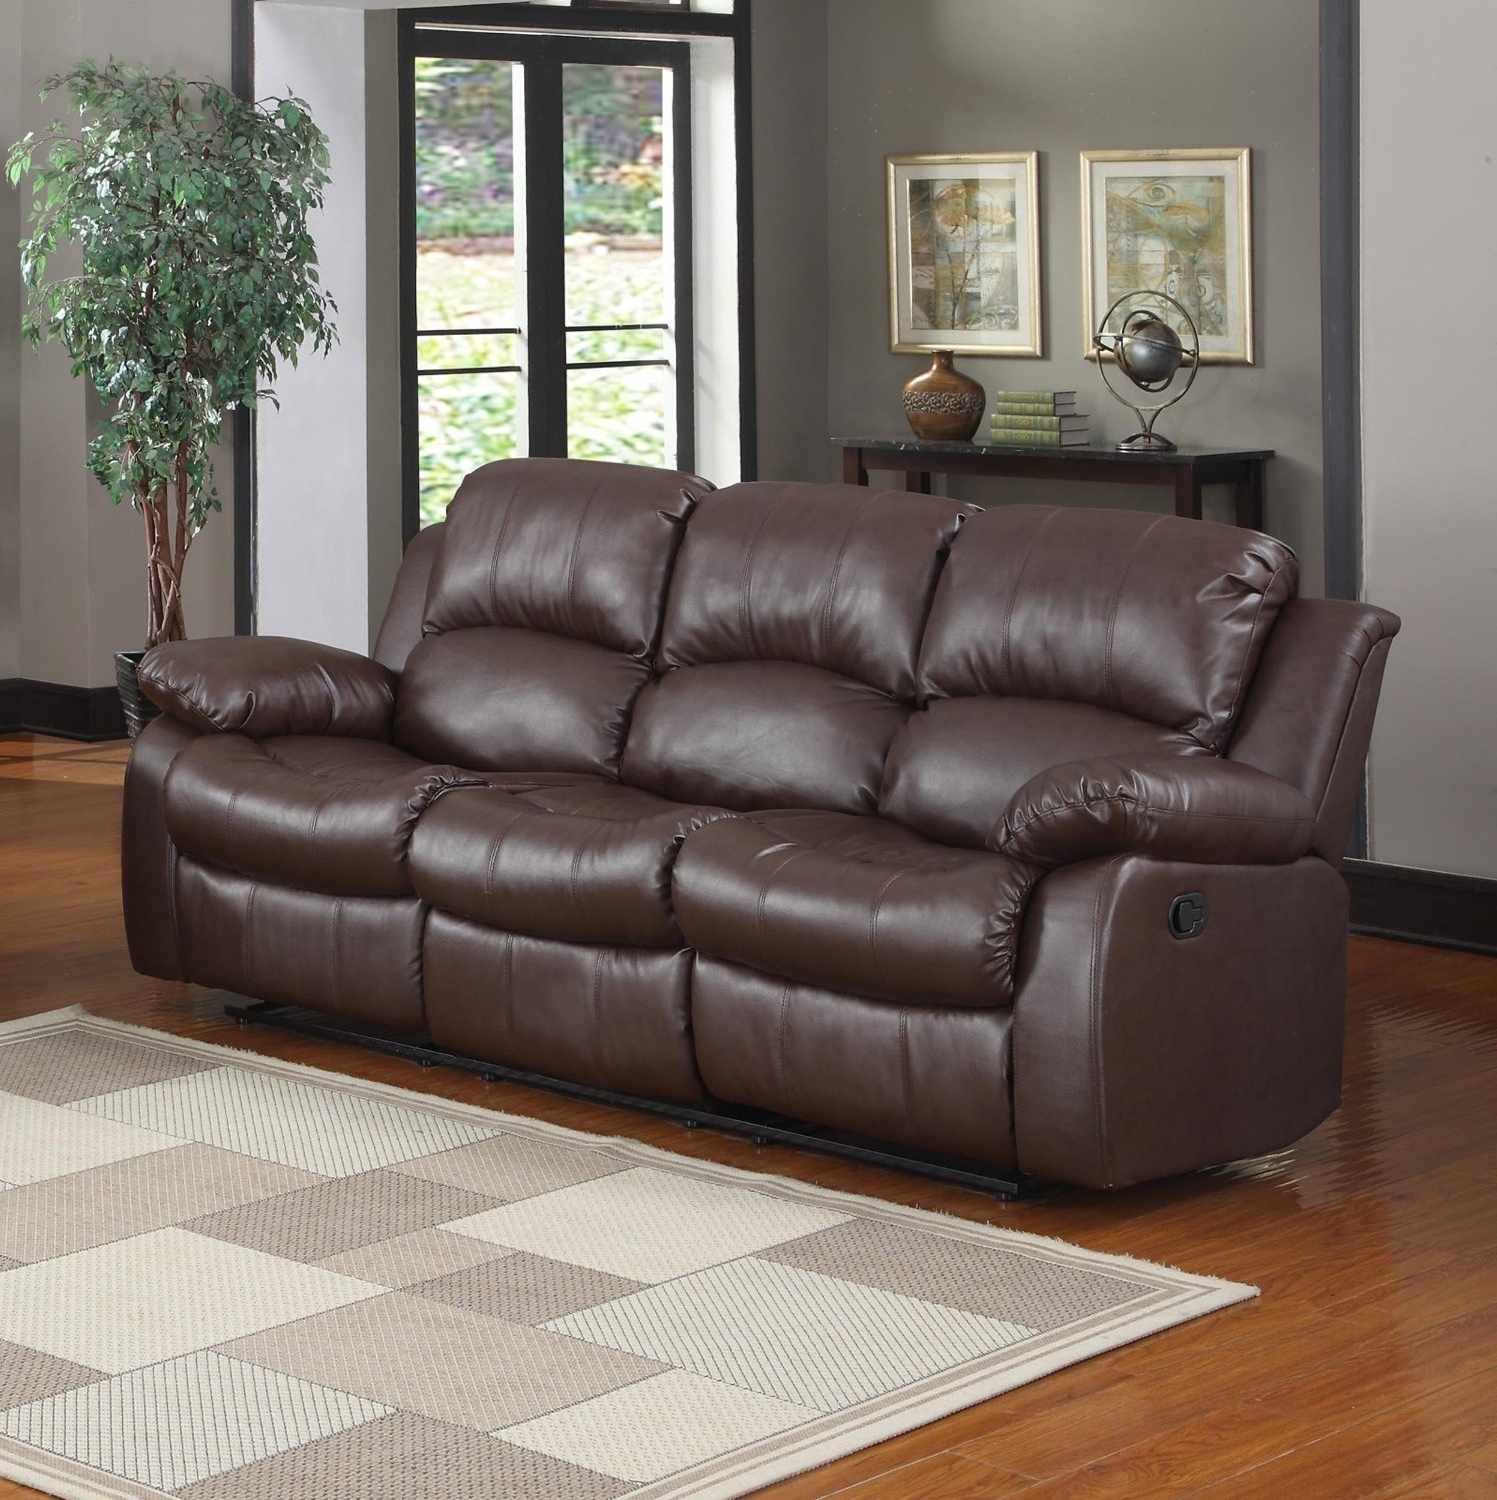 2018 Amazon: Bonded Leather Double Recliner Sofa Living Room With Regard To Recliner Sofas (View 1 of 15)